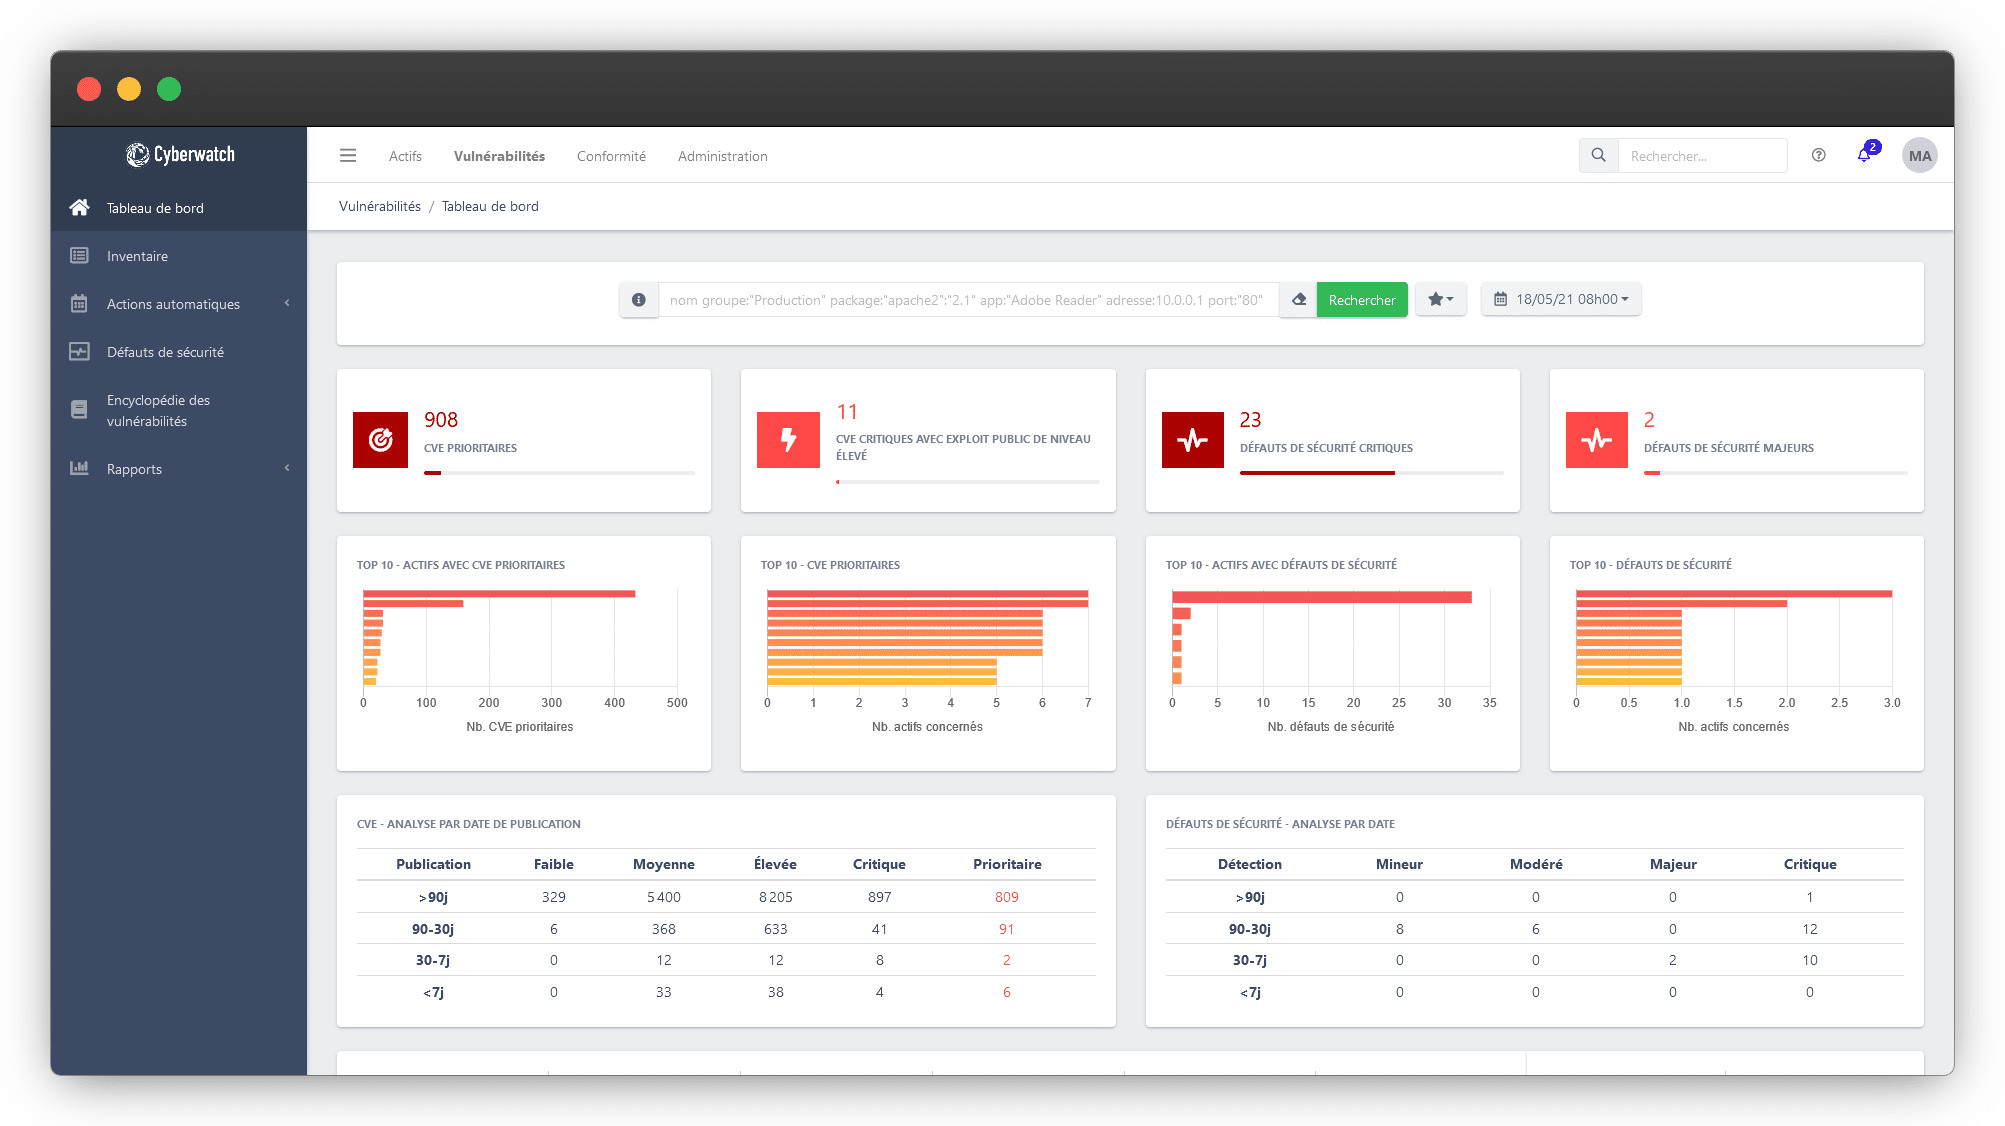 Cyberwatch Vulnerability Manager is a vulnerability management platform with Assets mapping, Vulnerability scanning, Prioritization based on technical risk and business requirements, Decision-making tools, and an embedded Patch Management module.